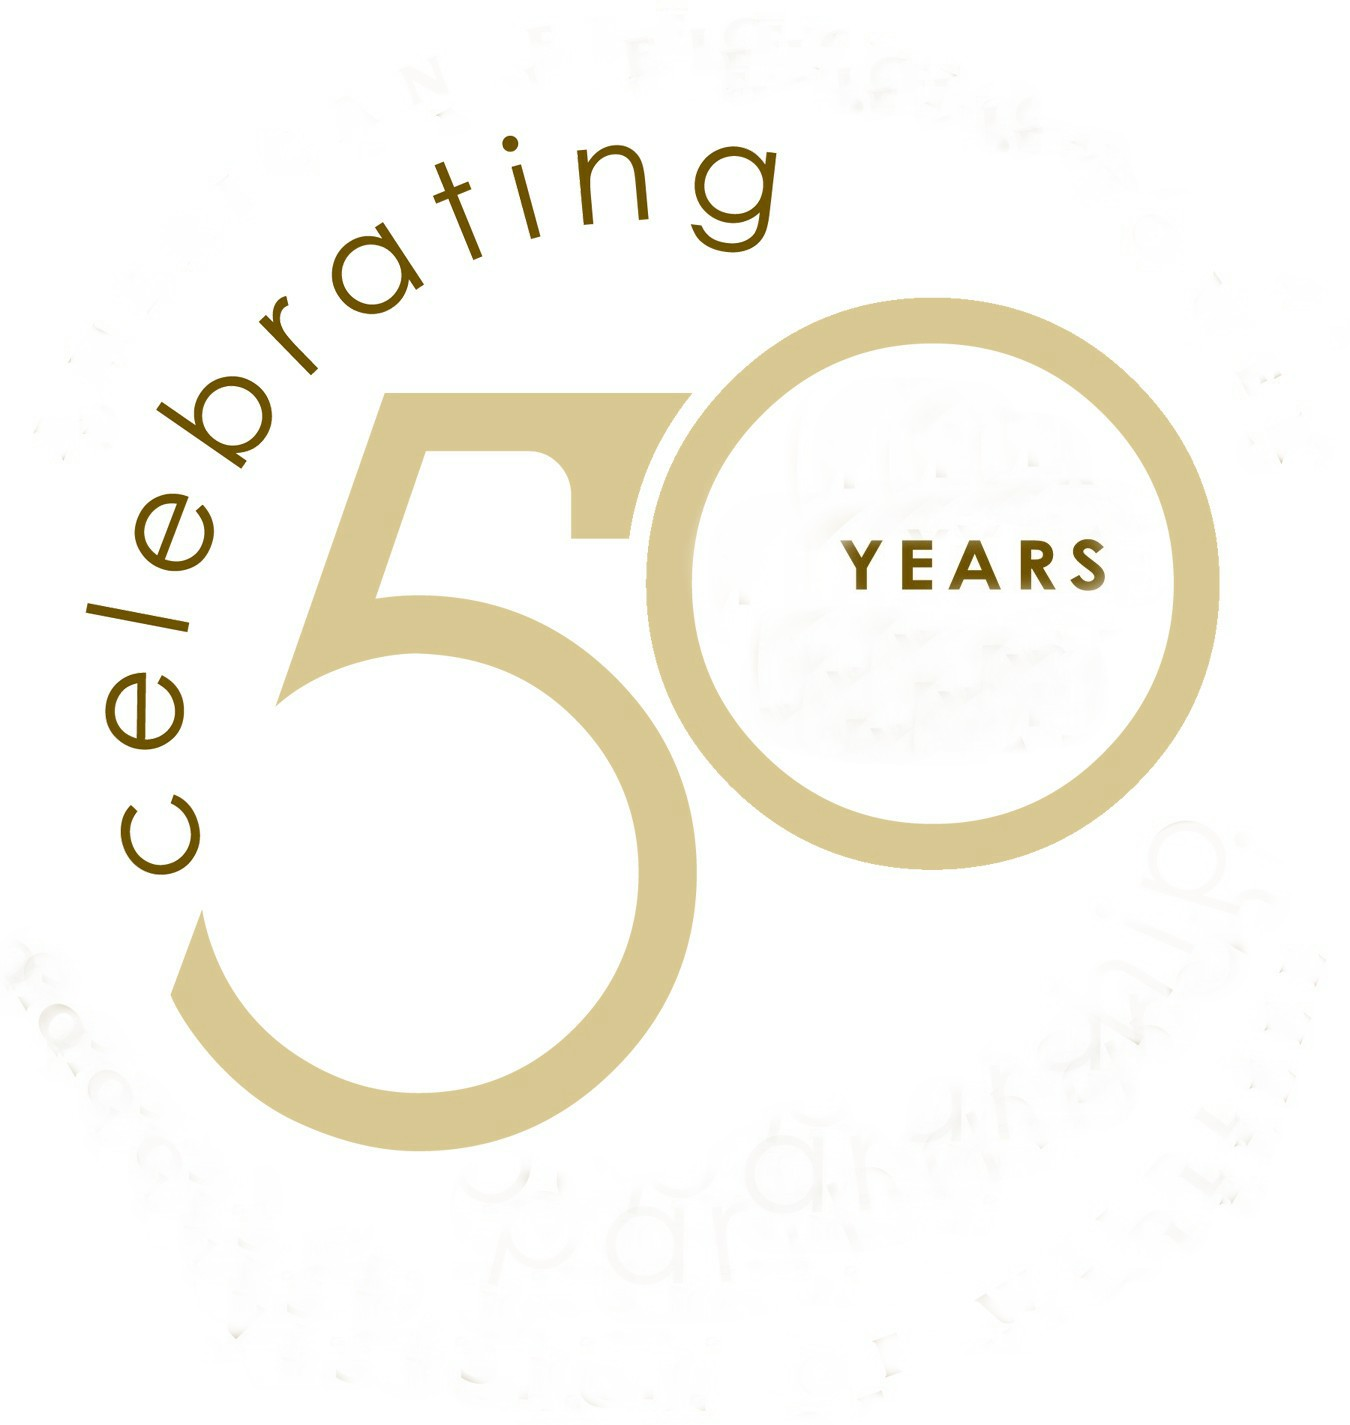 This Year Lanera Decorating Celebrates It S 50th Year In Business